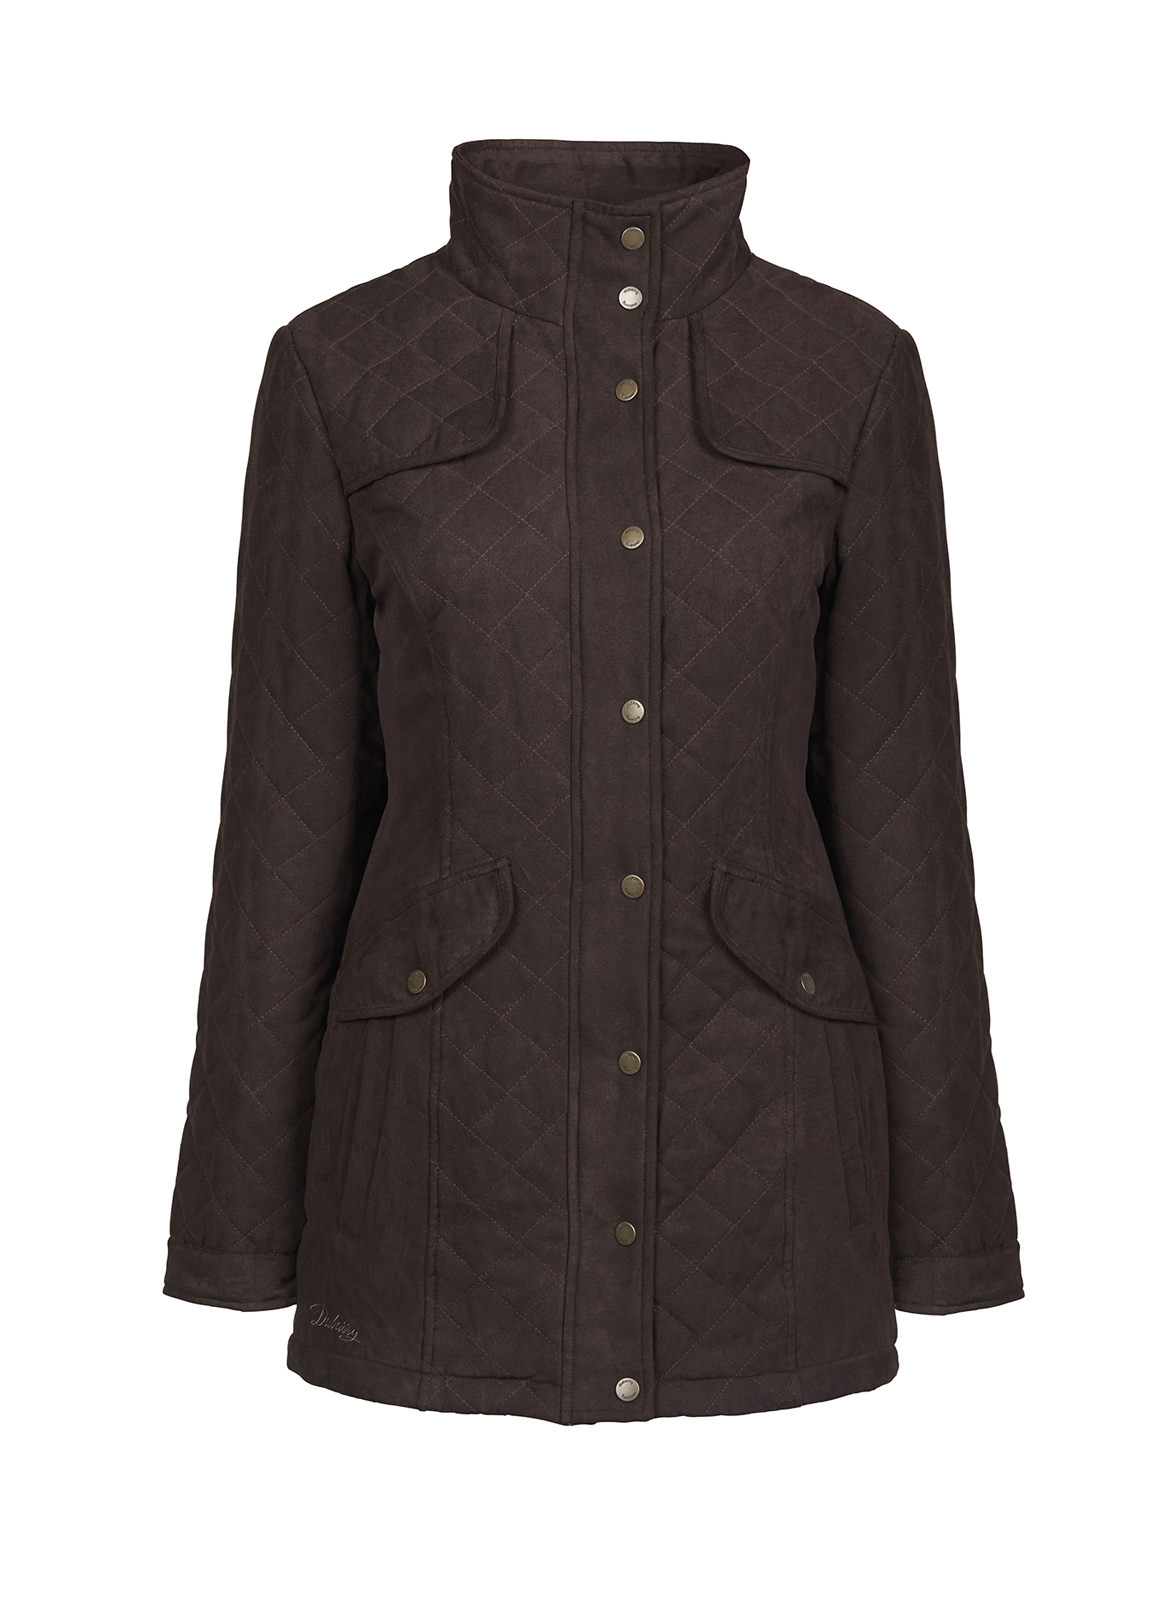 Dubarry_Kanturk Womens Quilted Coat - Chestnut_Image_2